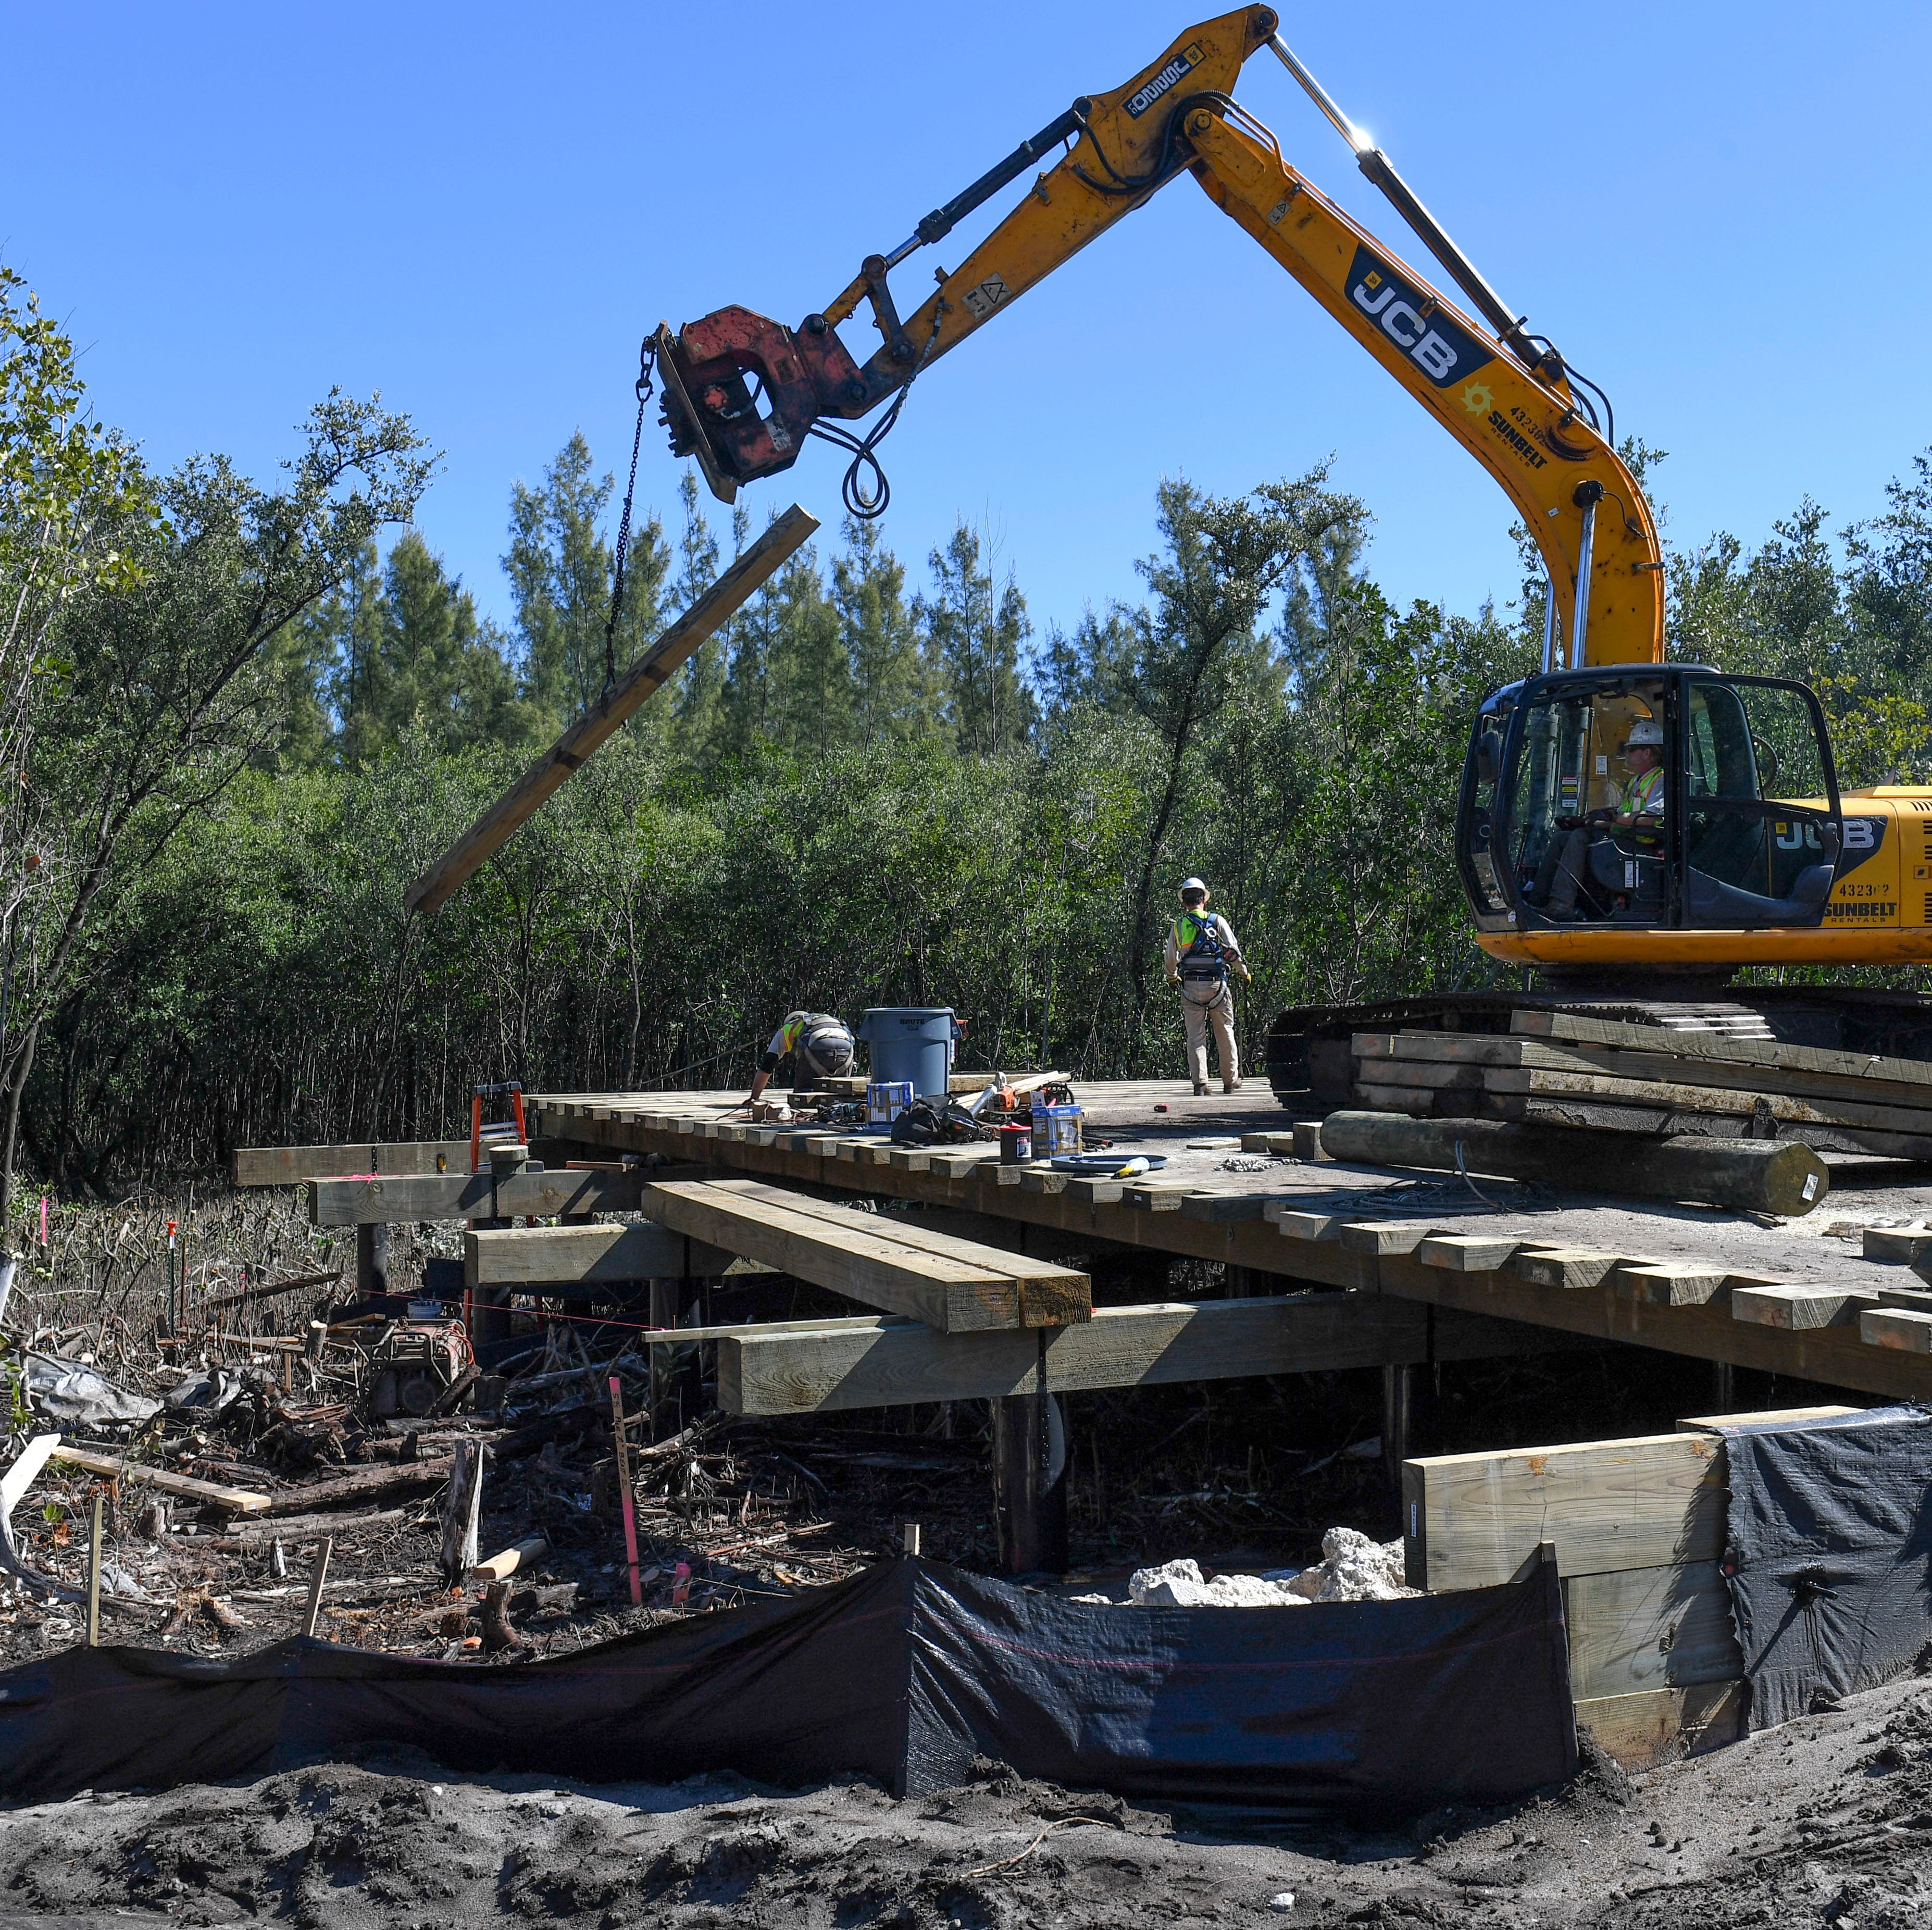 Mangrove-cutting developer on Hutchinson Island expected to pay $32,000 in mitigation